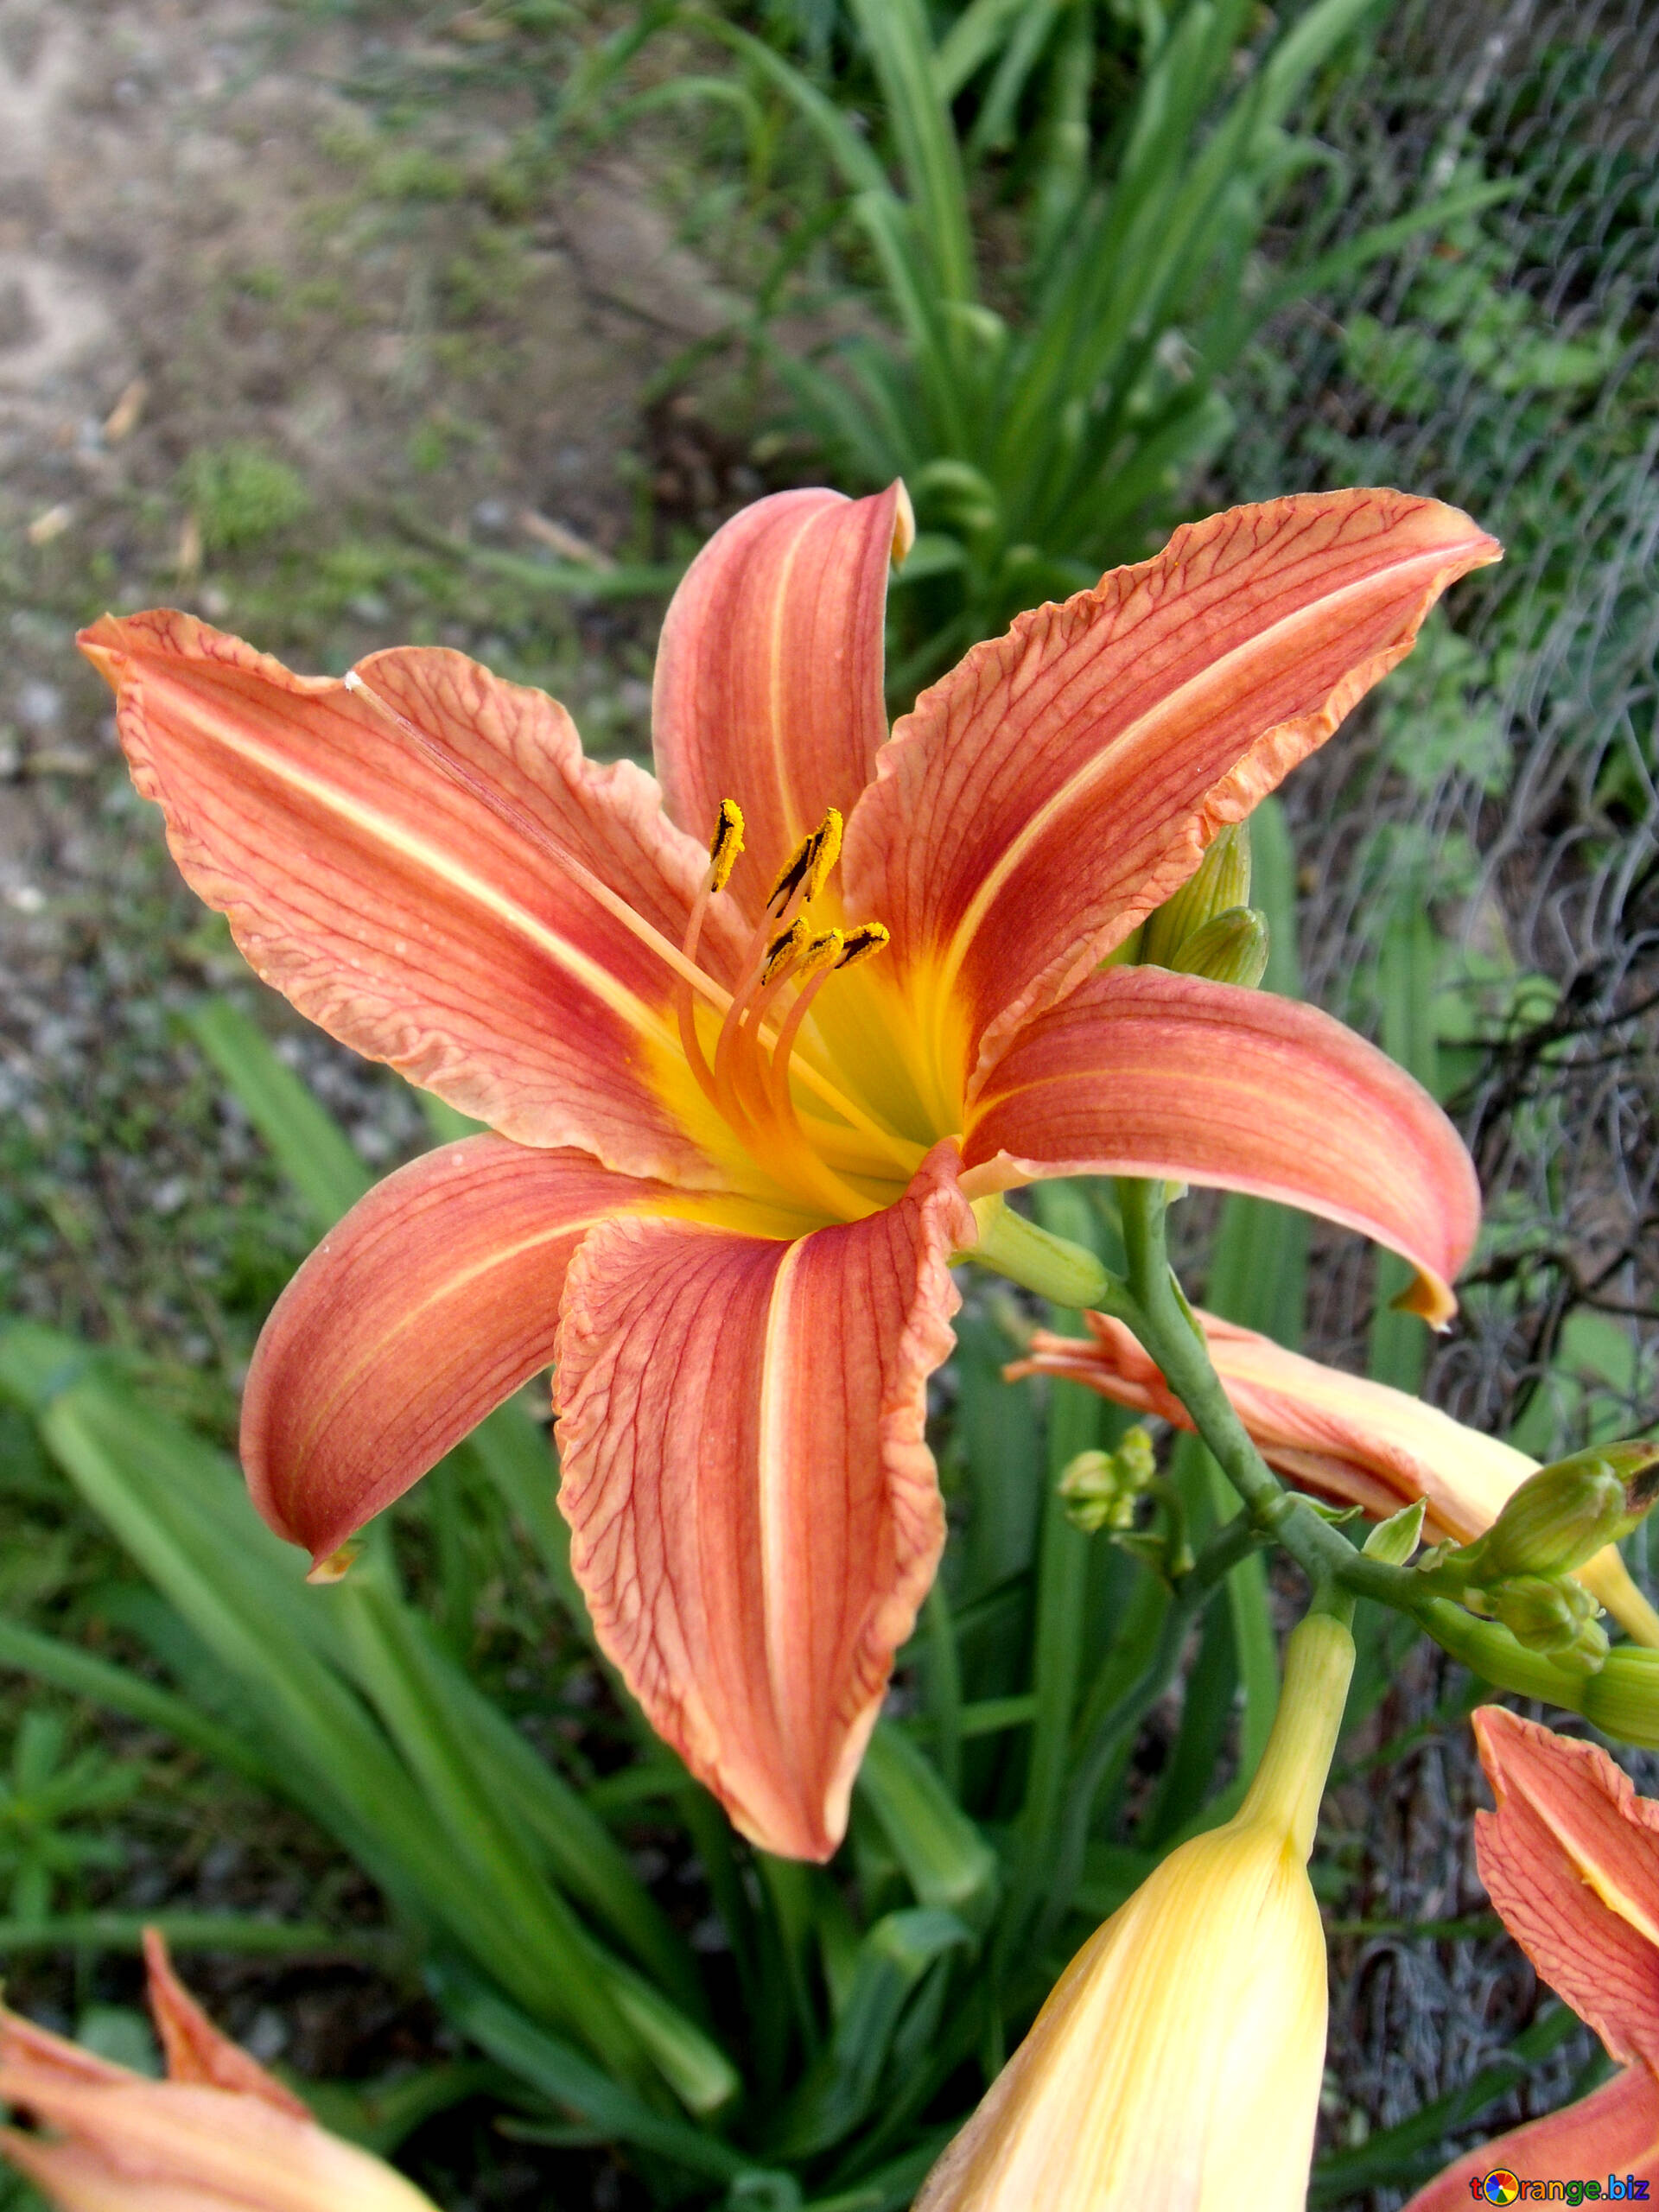 Download Free Image Flower Lily Wallpapers For Desktop In HD Wallpaper Size 1920px